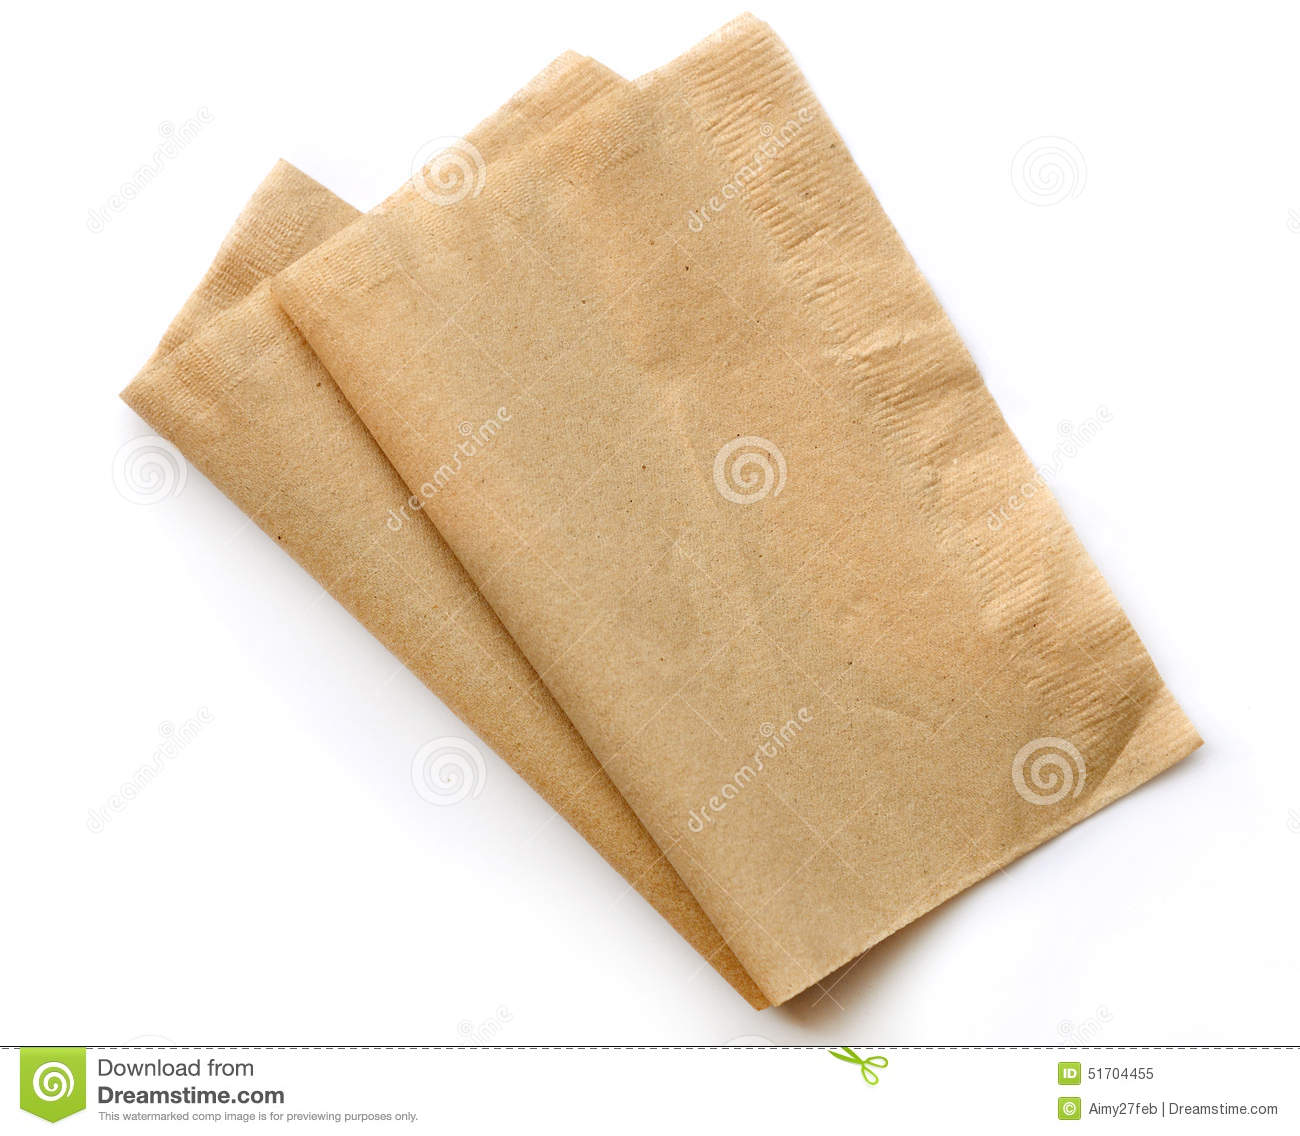 is tissue paper recyclable